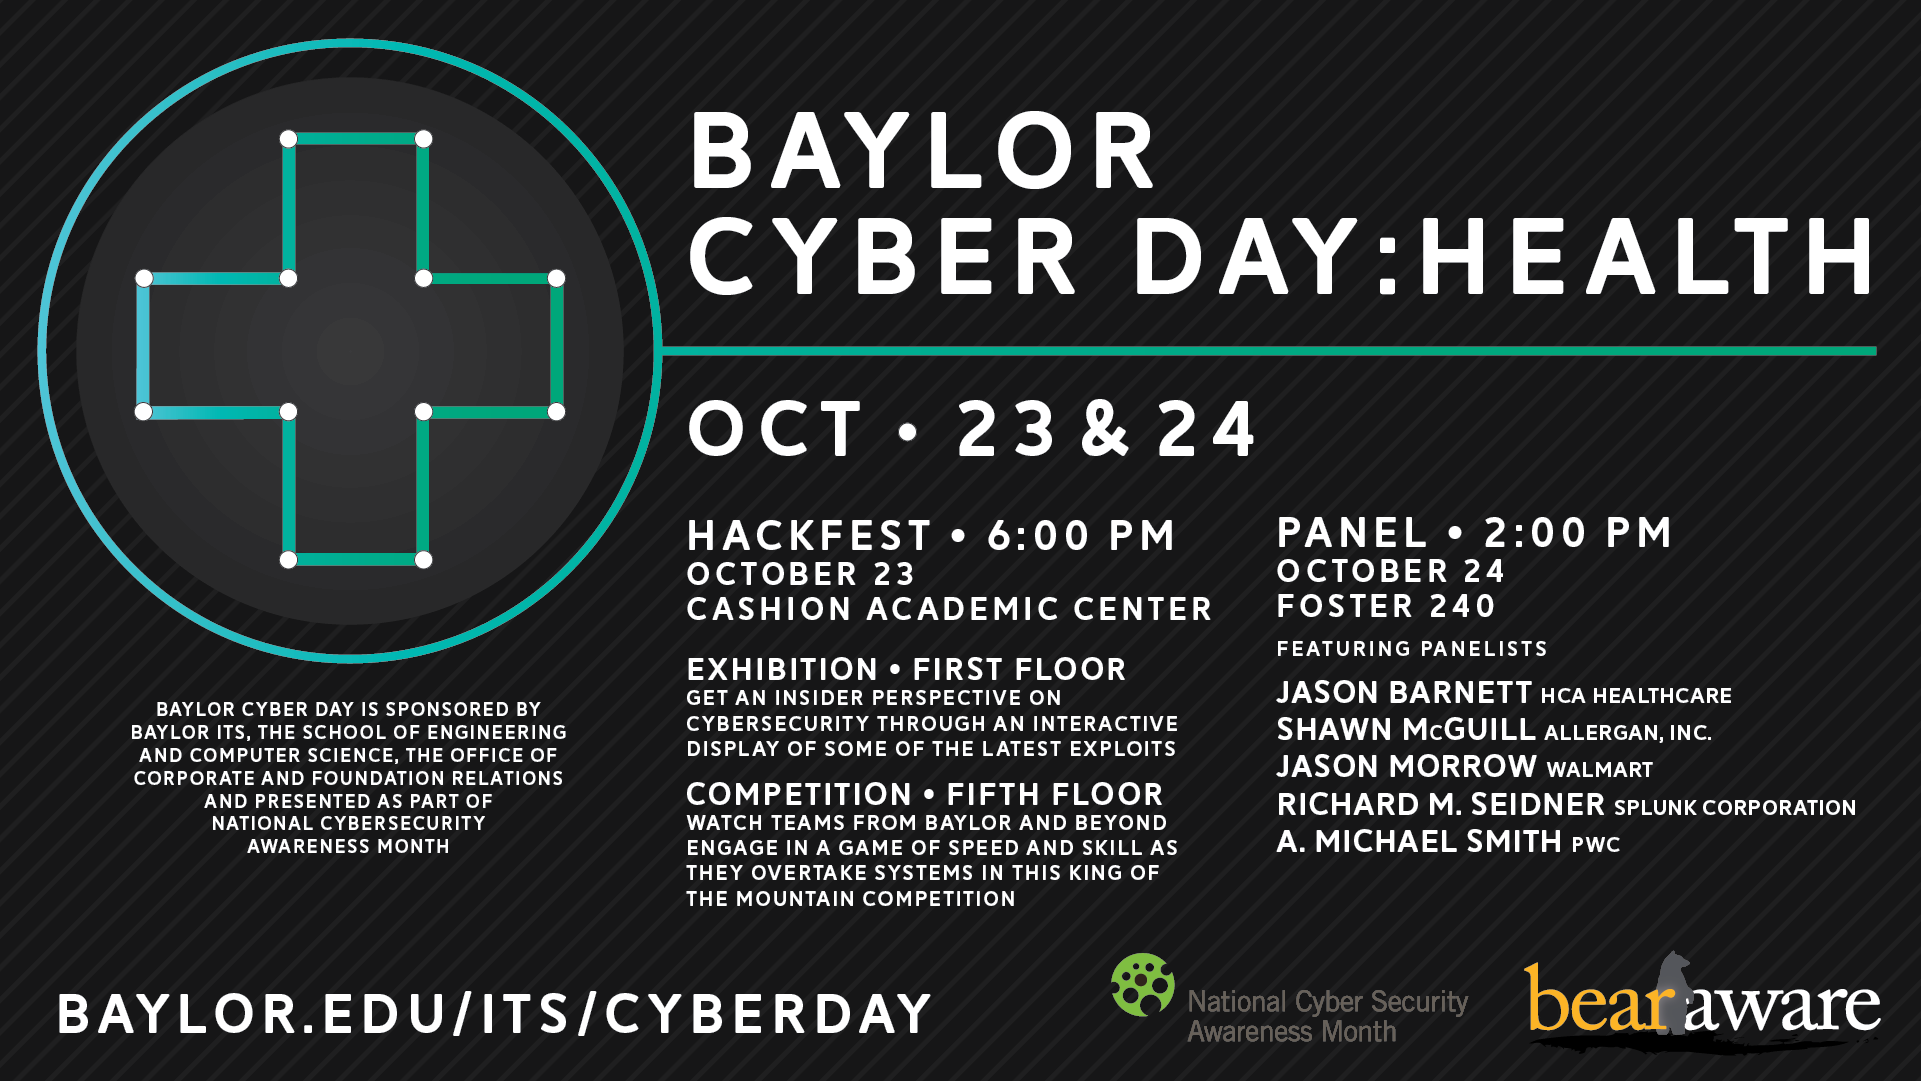 cyber day_Baylor Cyber Day Advocates for Cybersecurity, Protection of Health Data | Media and ...